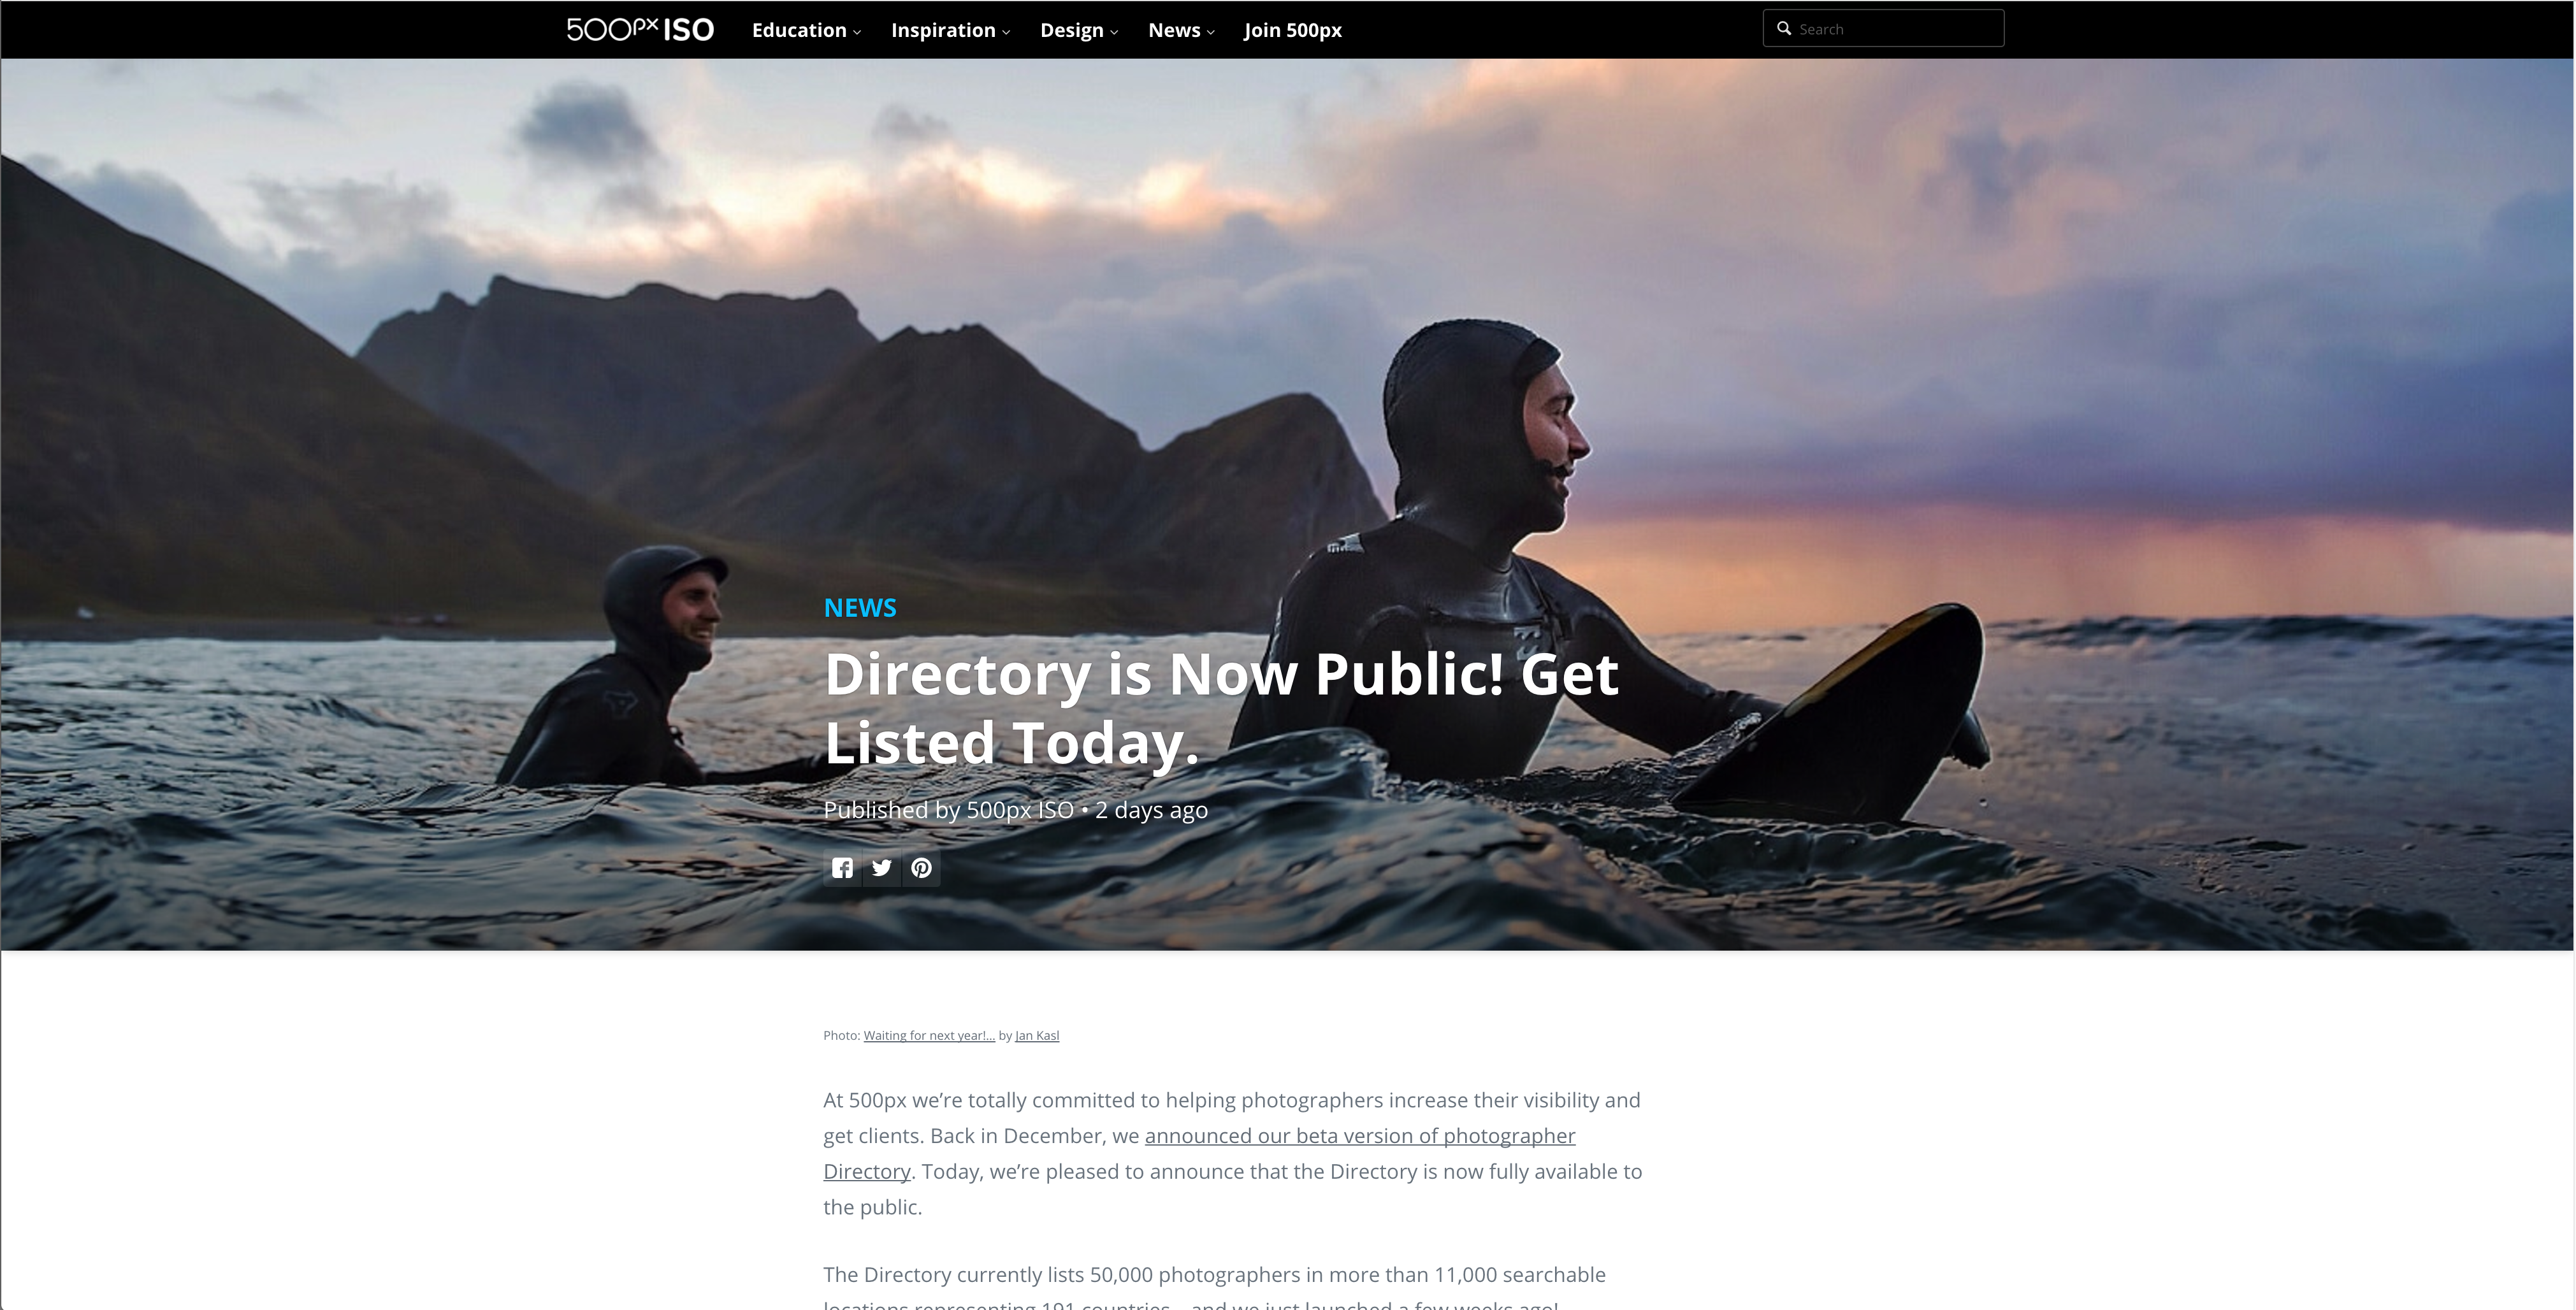 500px's new directory